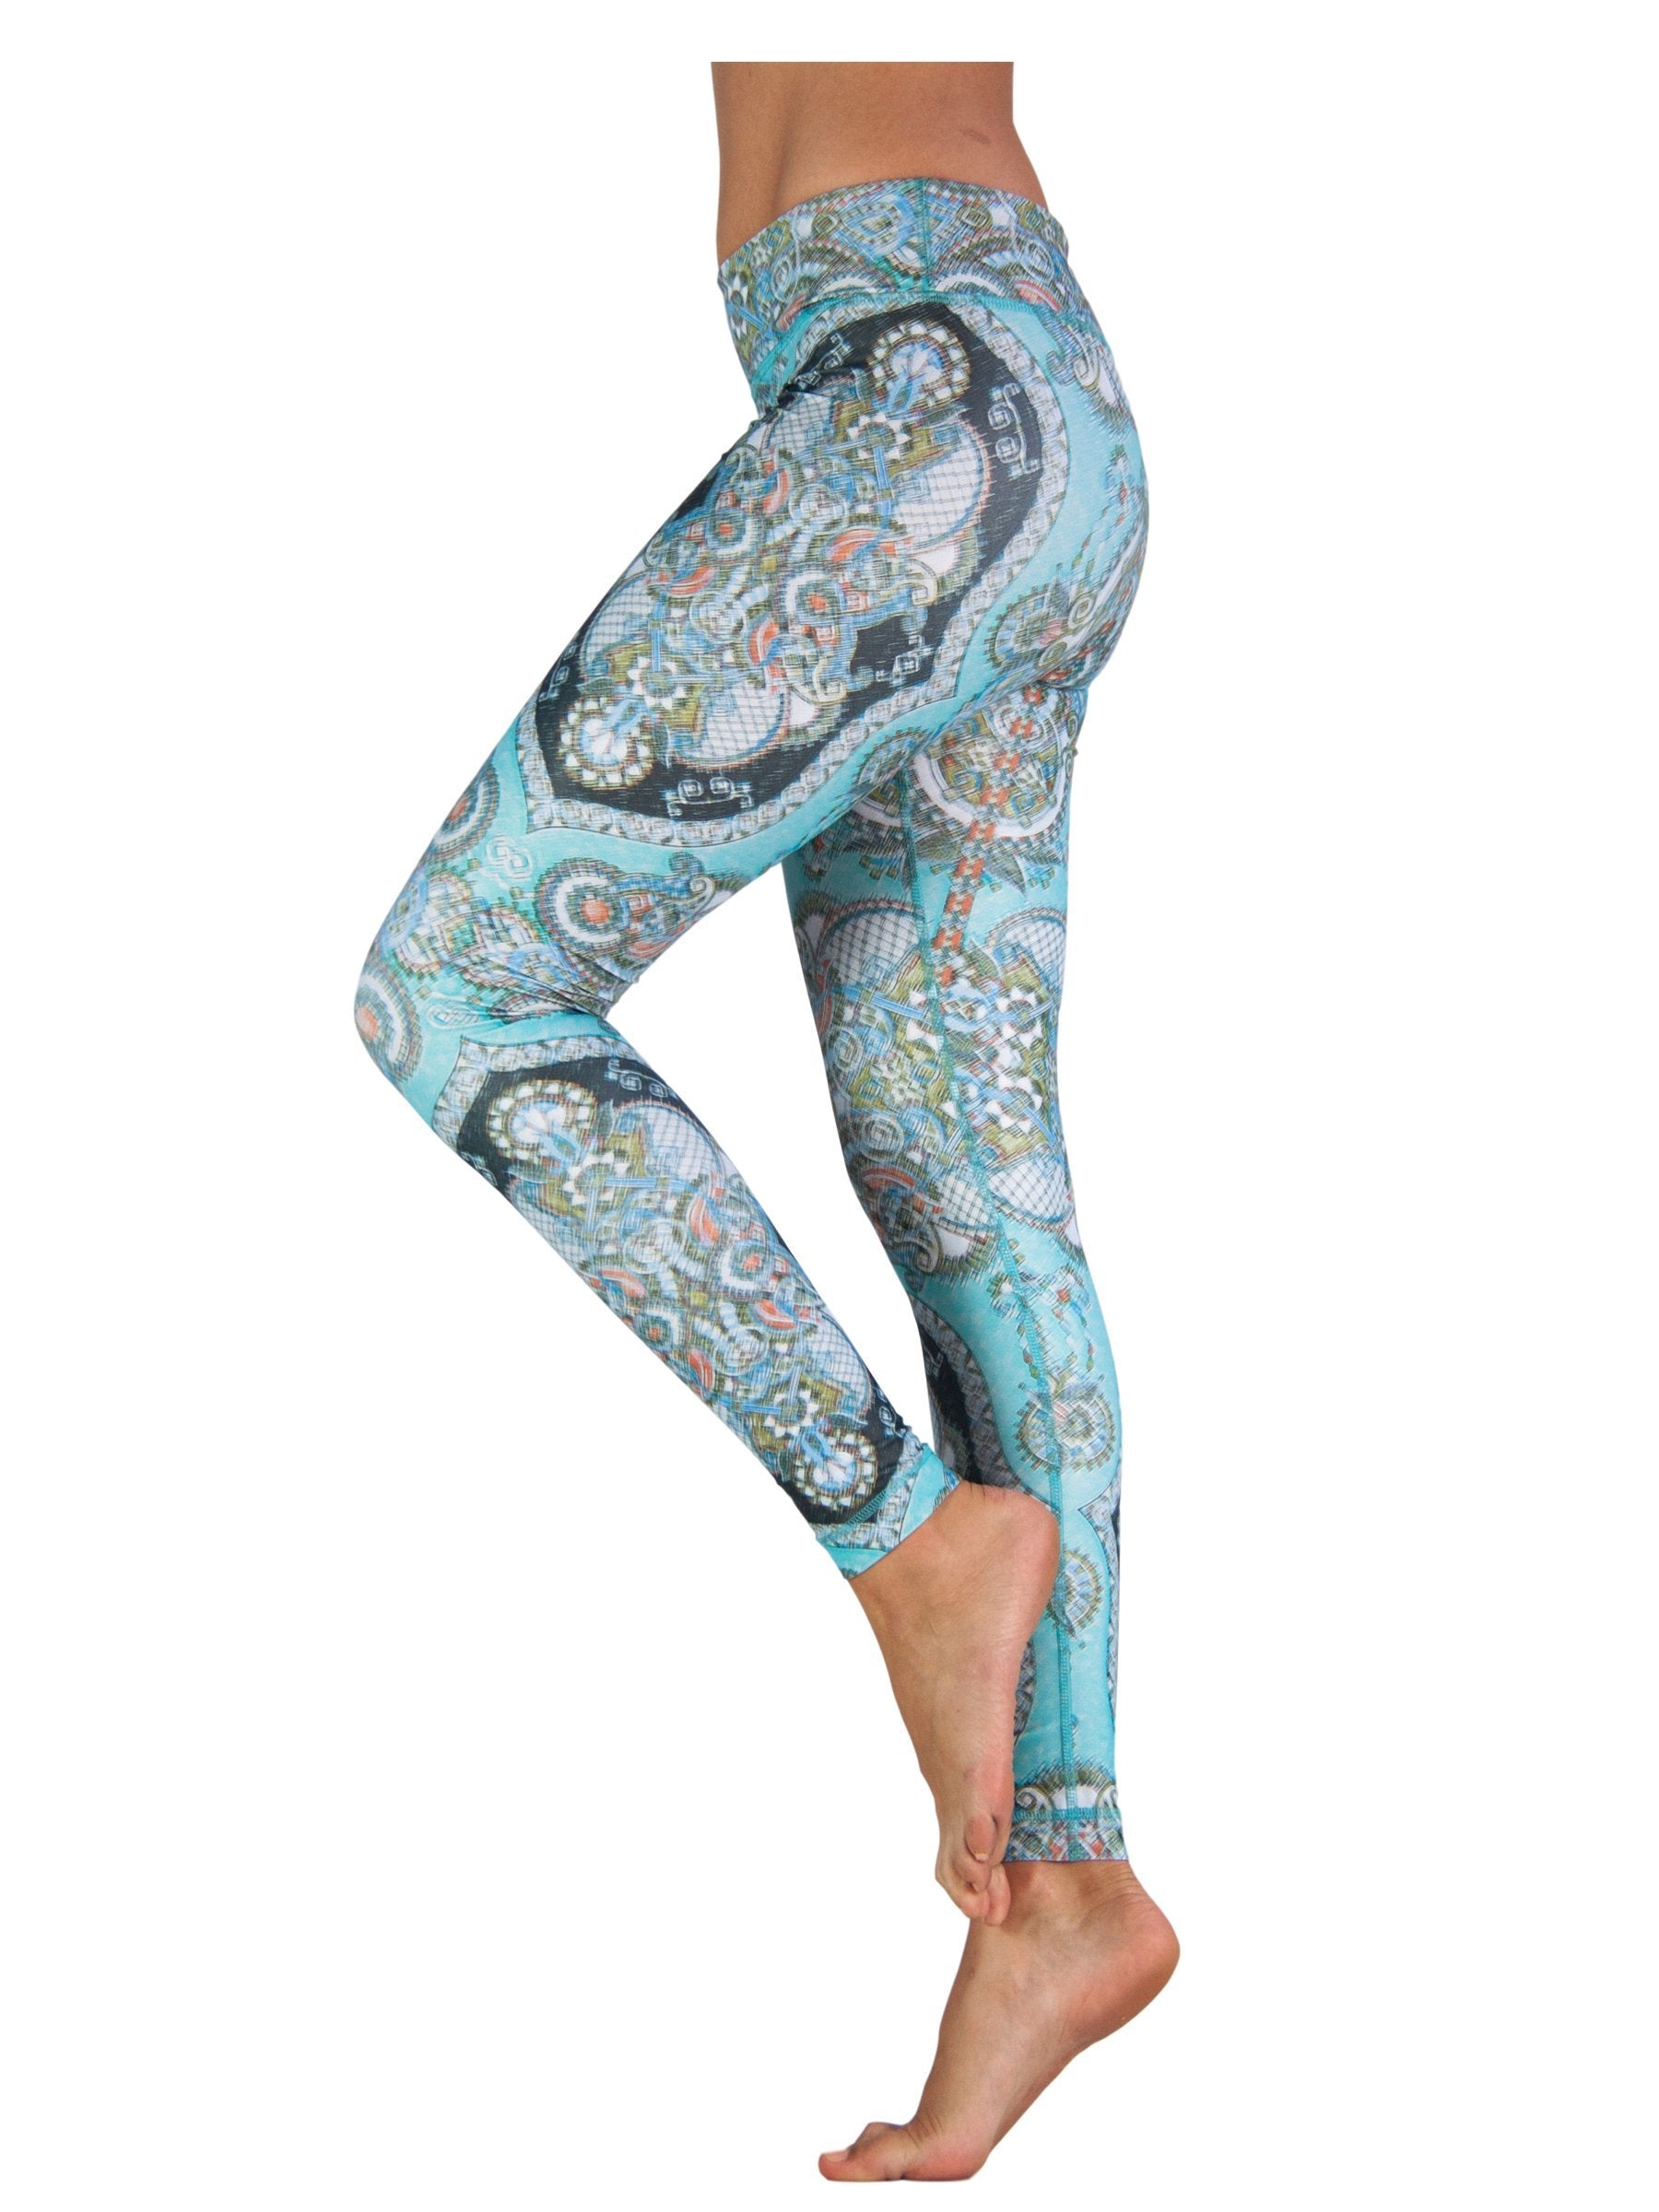 Piece of Art by Niyama - High Quality, Yoga Legging for Movement Artists.